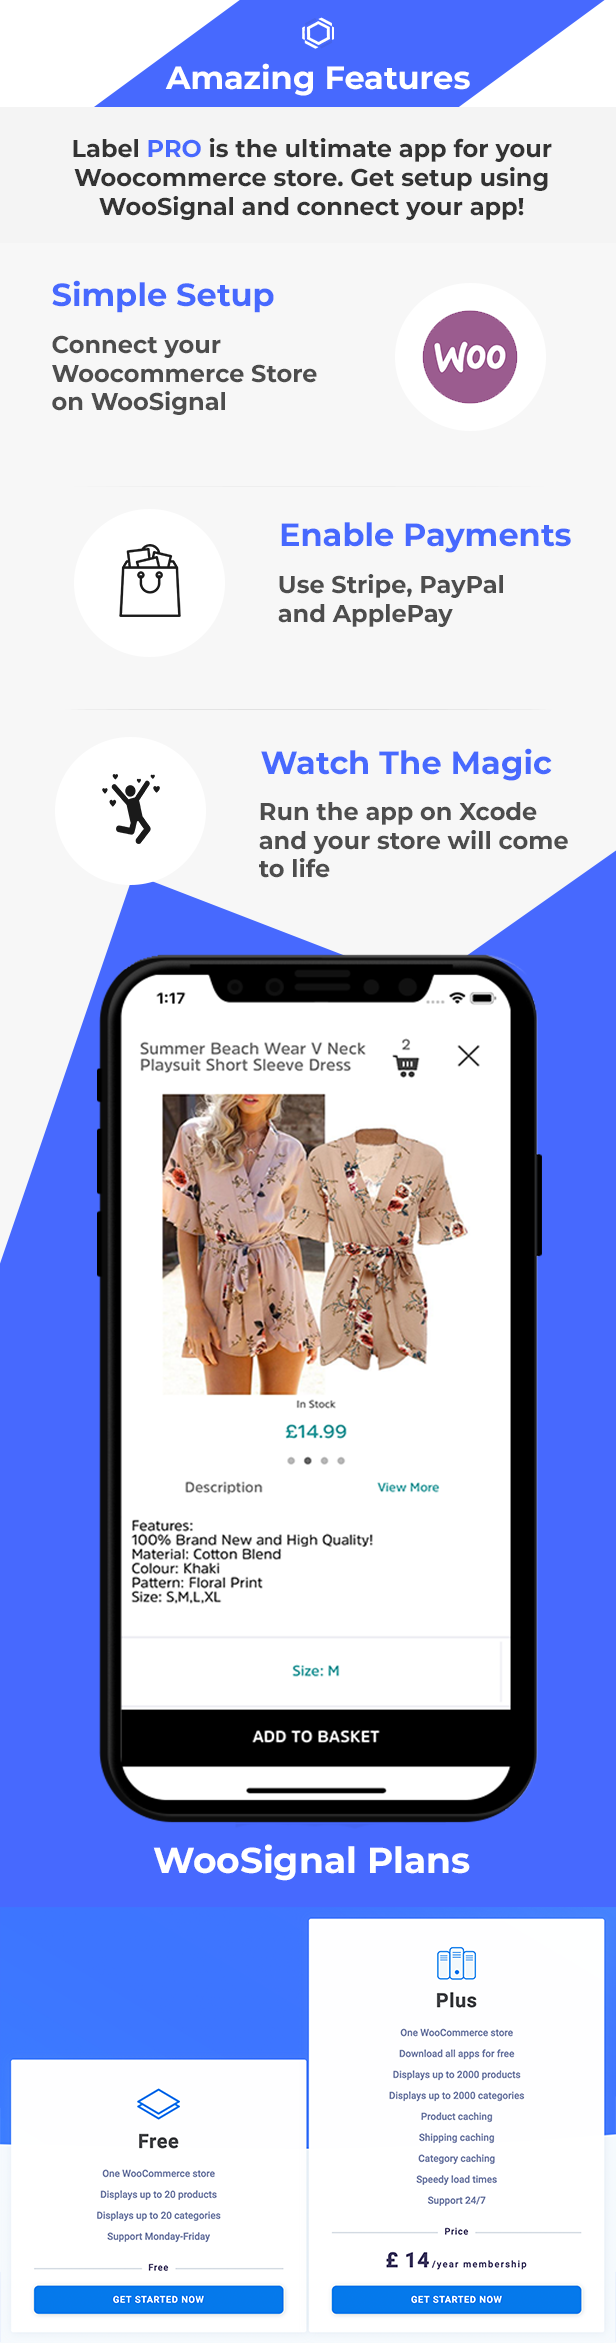 Woocommerce App LabelPRO For Ecommerce Stores Written in Swift 4 Xcode IOS - 5